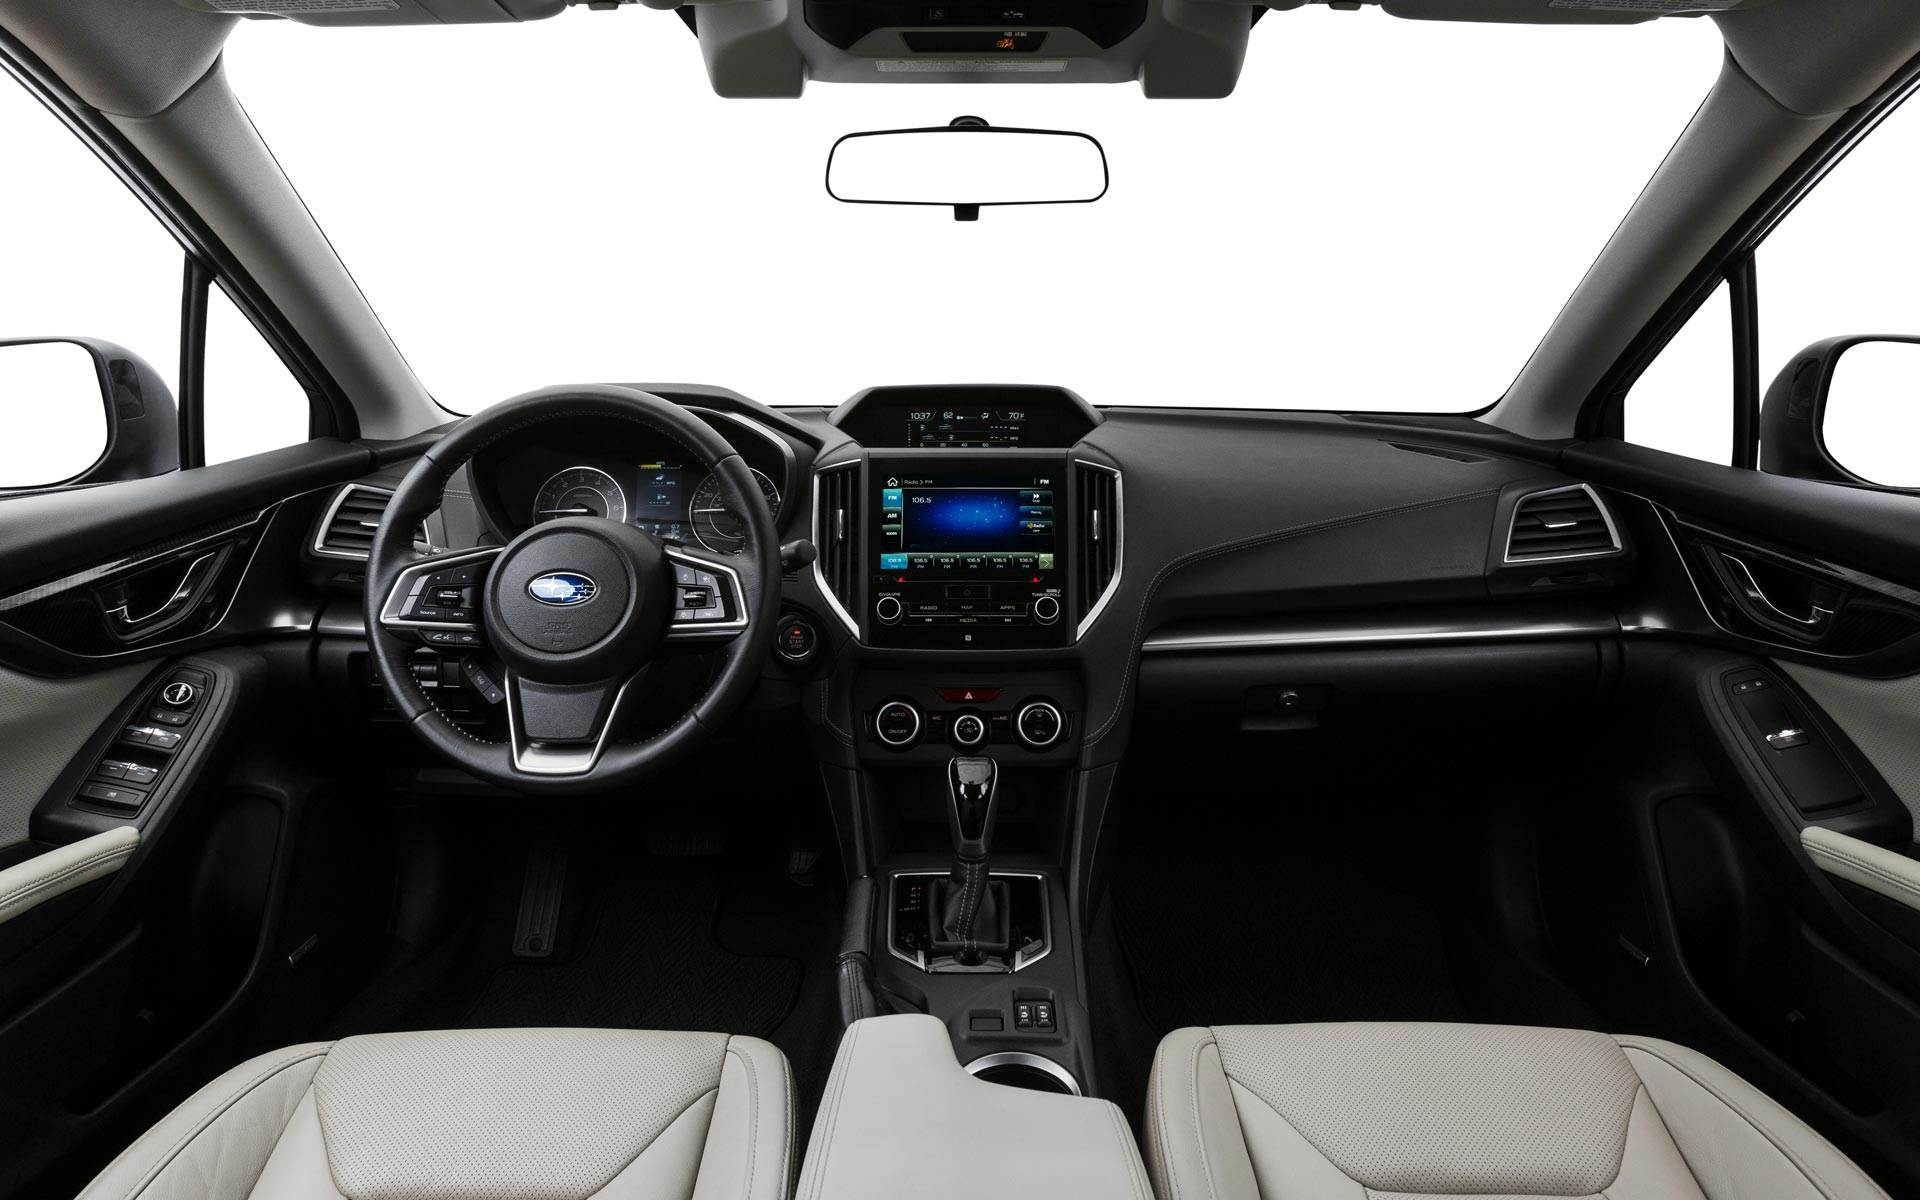 Denver Colorado - 2017 Subaru Impreza's INTERIOR